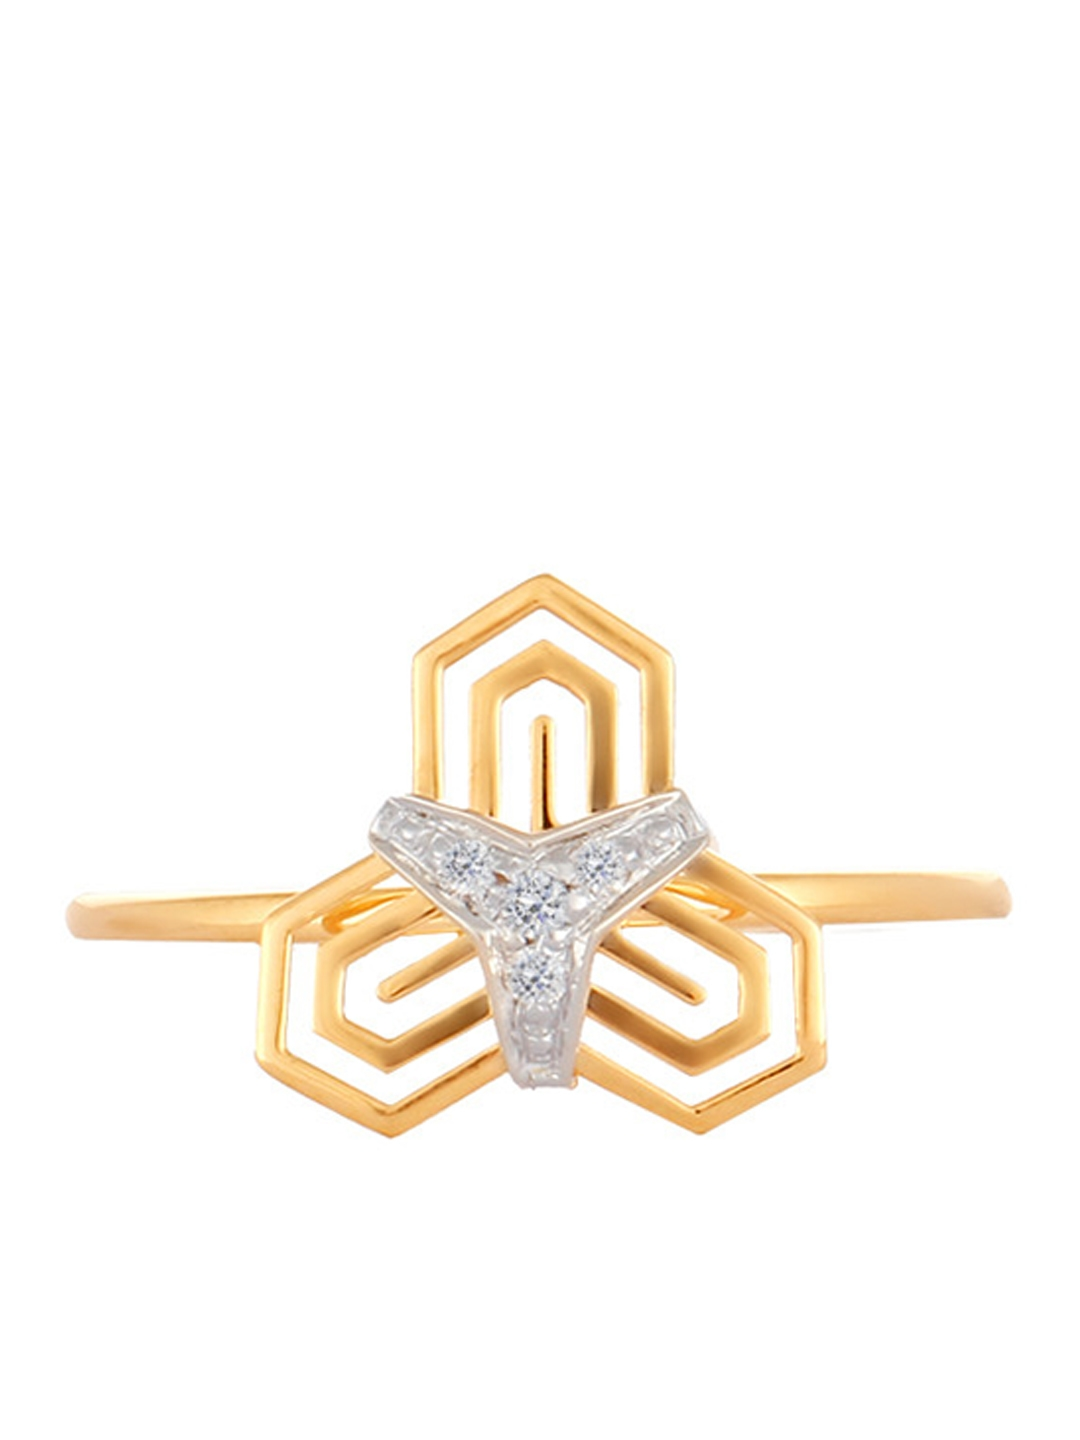 Mia by Tanishq 14KT Yellow Gold Toned Ring With Diamond